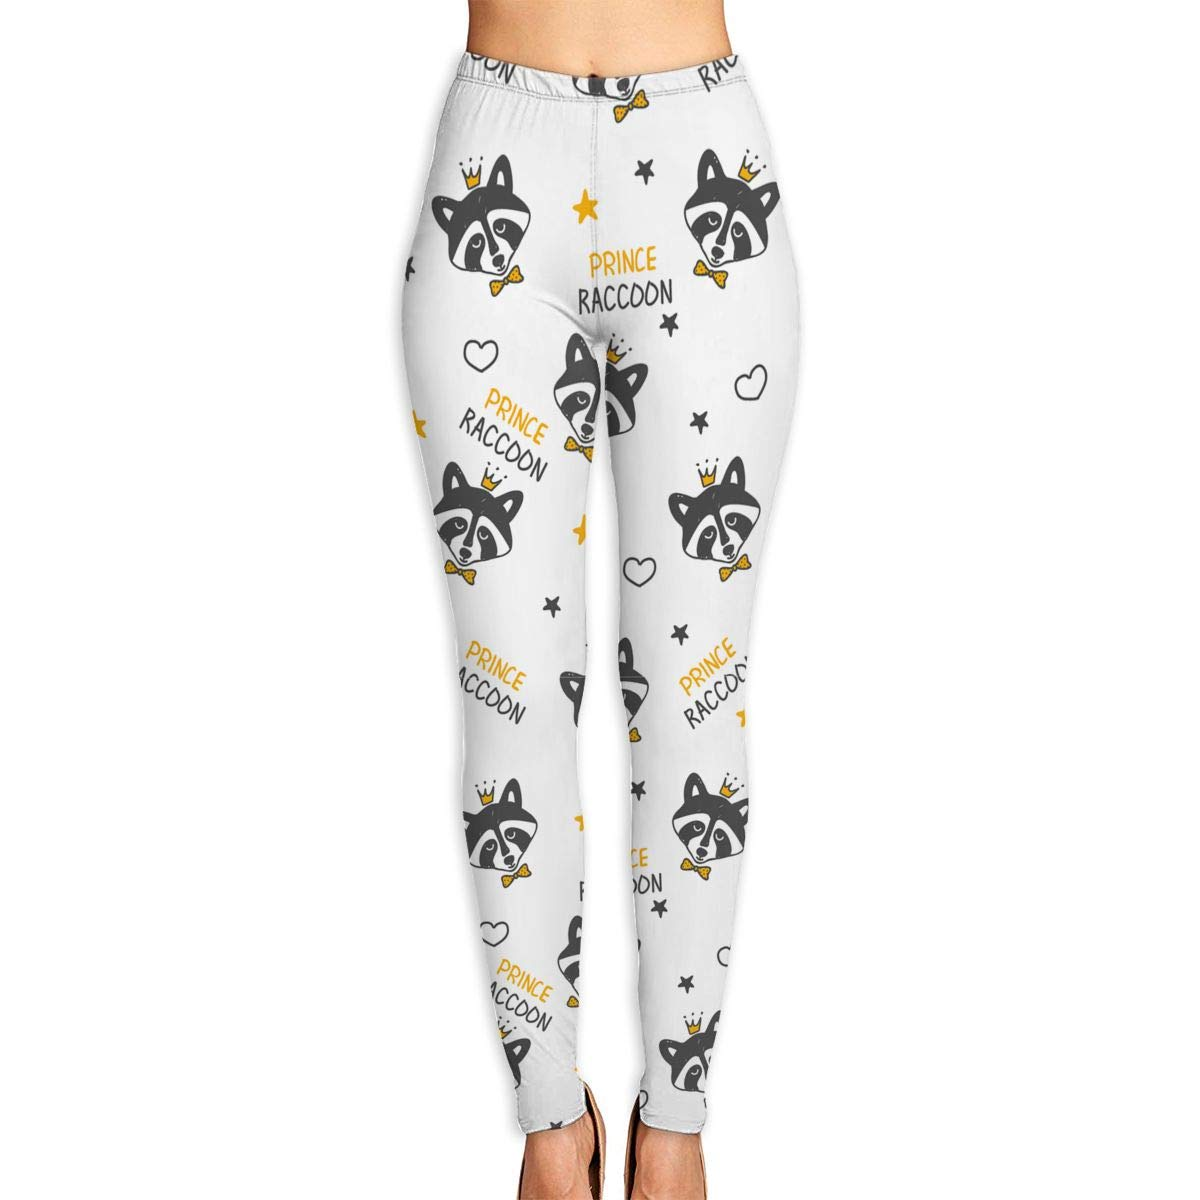 Ayf-S478 Raccoons and Stars and Hearts Womens Yoga Pants Sports Workout Leggings Athletic Tight Pants Fitness Power Stretch Yoga Leggings Tummy Control